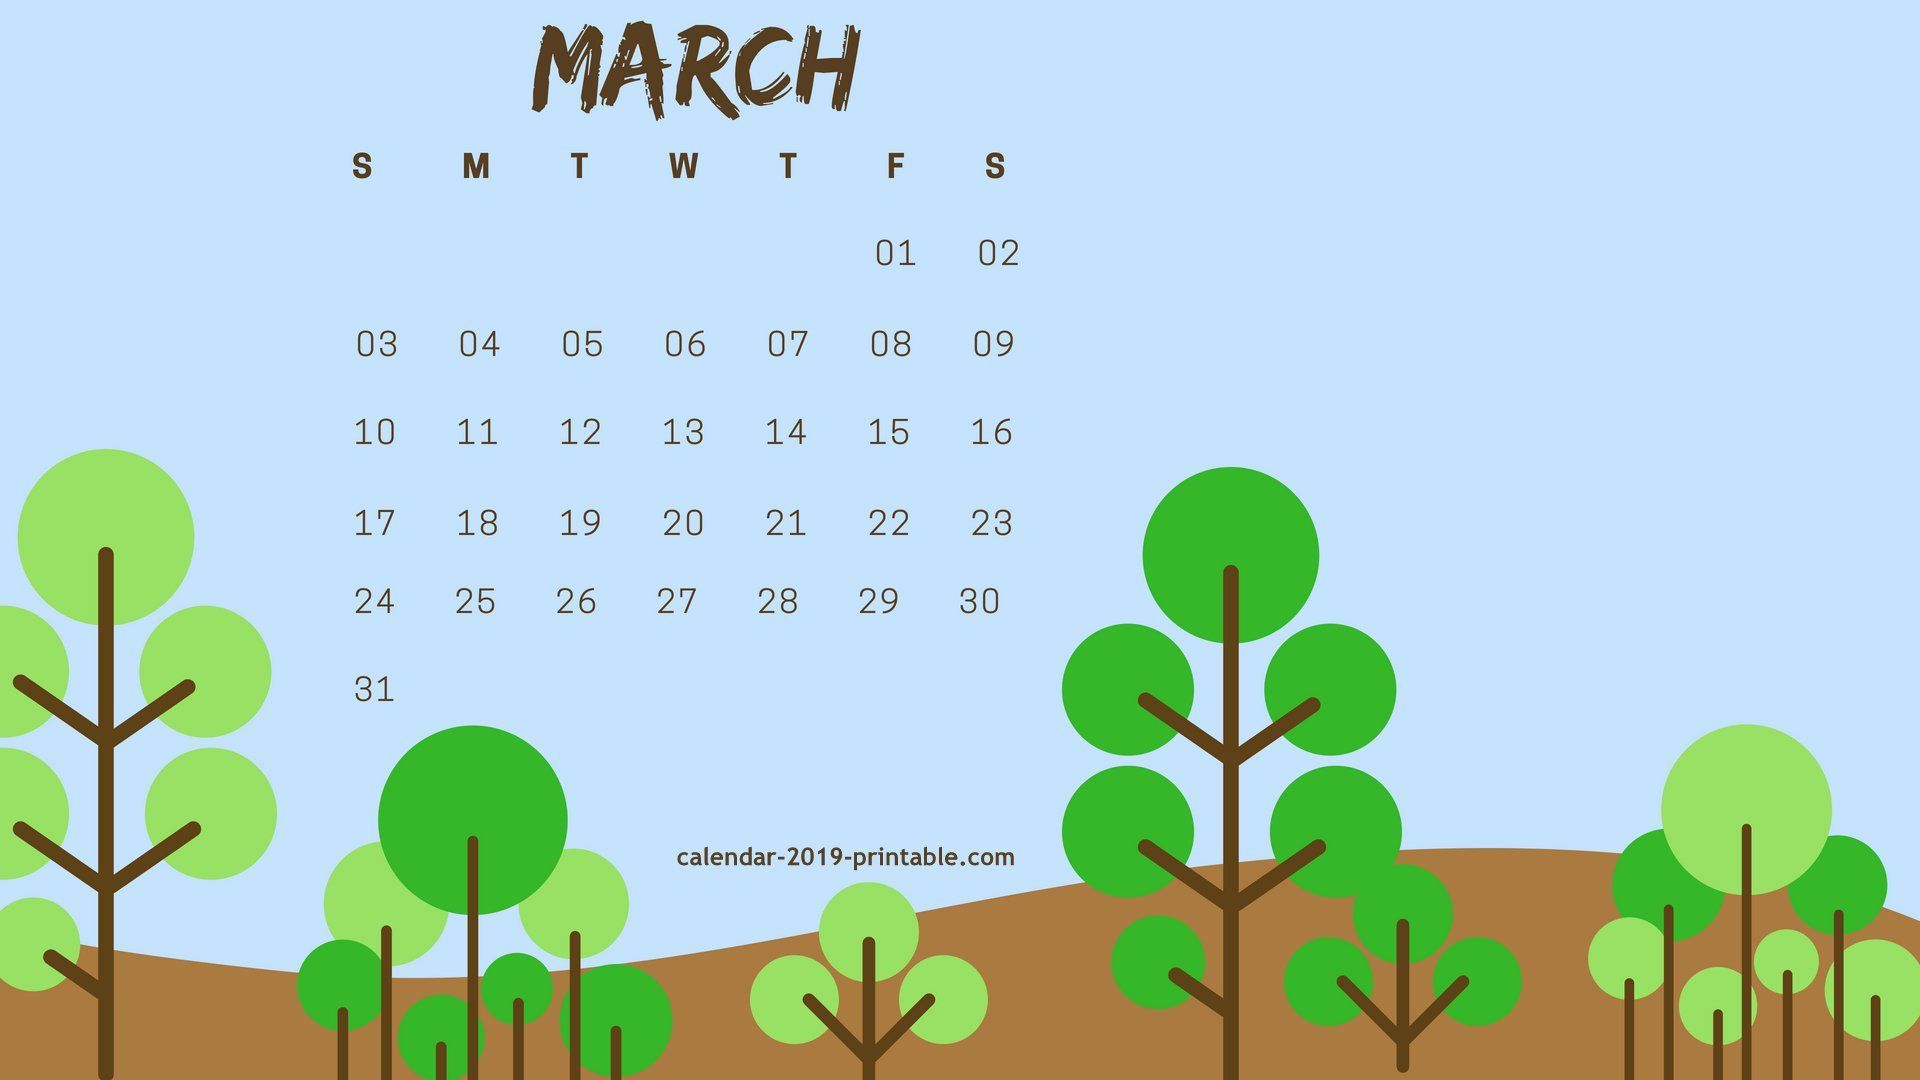 March 2019 Desktop Calendar Wallpaper Calendar Wallpaper 2019 Calendar Calendar Background